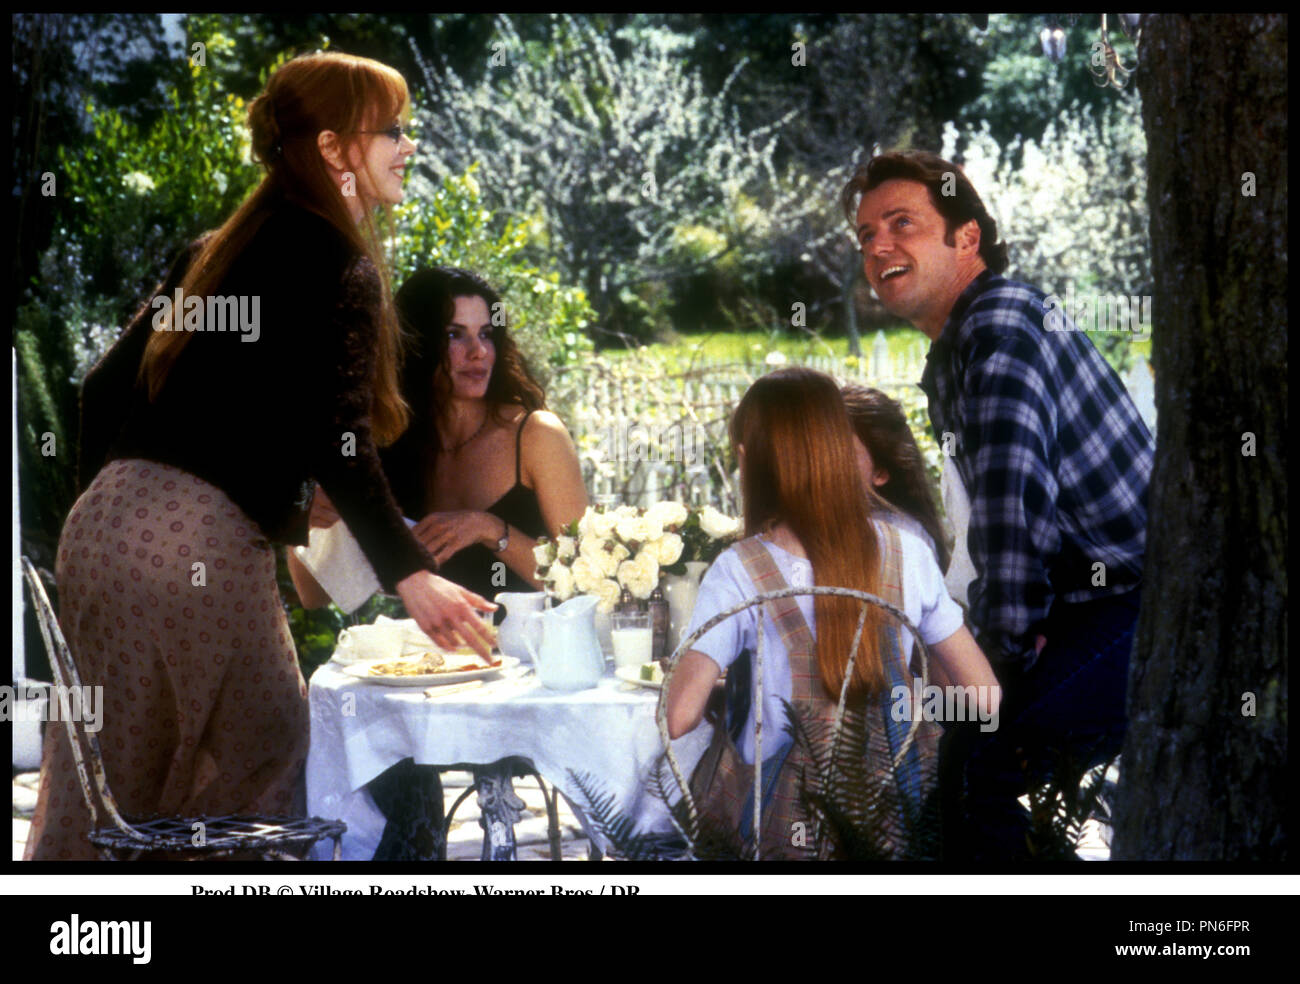 Prod DB © Village Roadshow-Warner Bros / DR LES ENSORCELEUSES (PRACTICAL MAGIC) de Griffin Dunne 1998 USA avec Nicole Kidman, Sandra Bullock, Evan Rachel Ward, Alexandra Artrip et Aidan Quinn repas de famille d'aprs le roman de Alice Hoffman - Stock Image